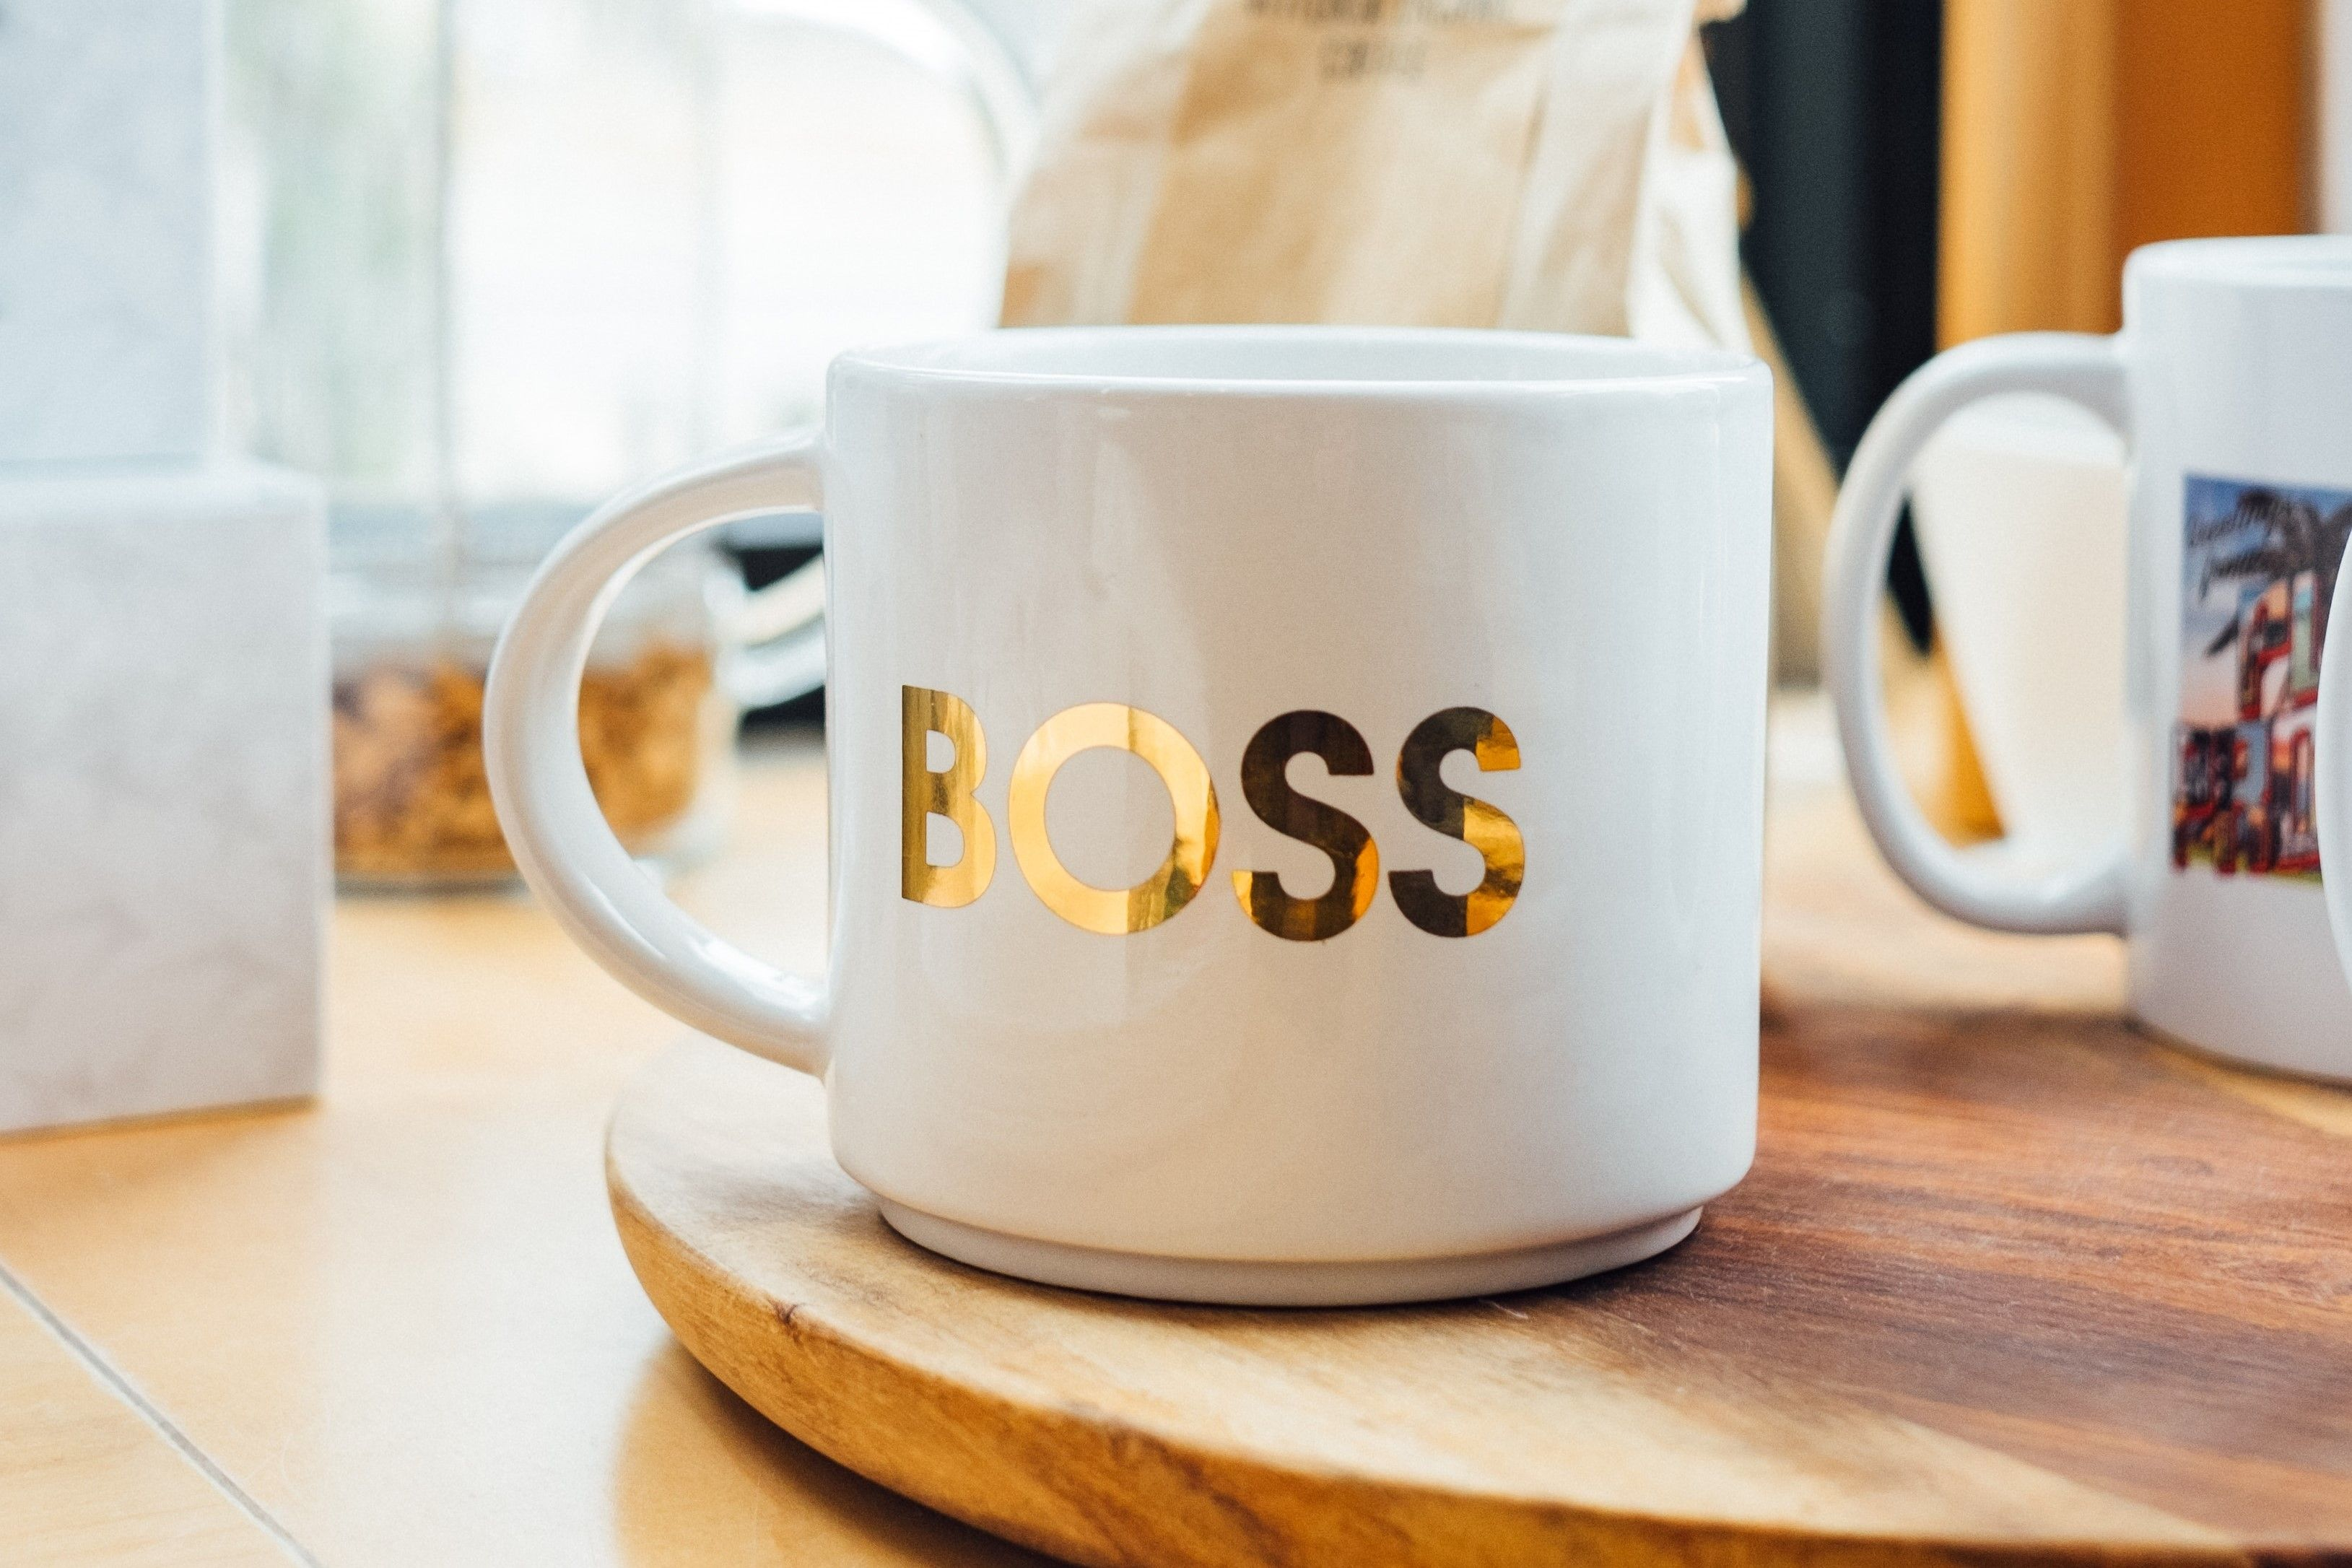 Get 2020 off to a good start with top boss tips | Inside Franchise Business